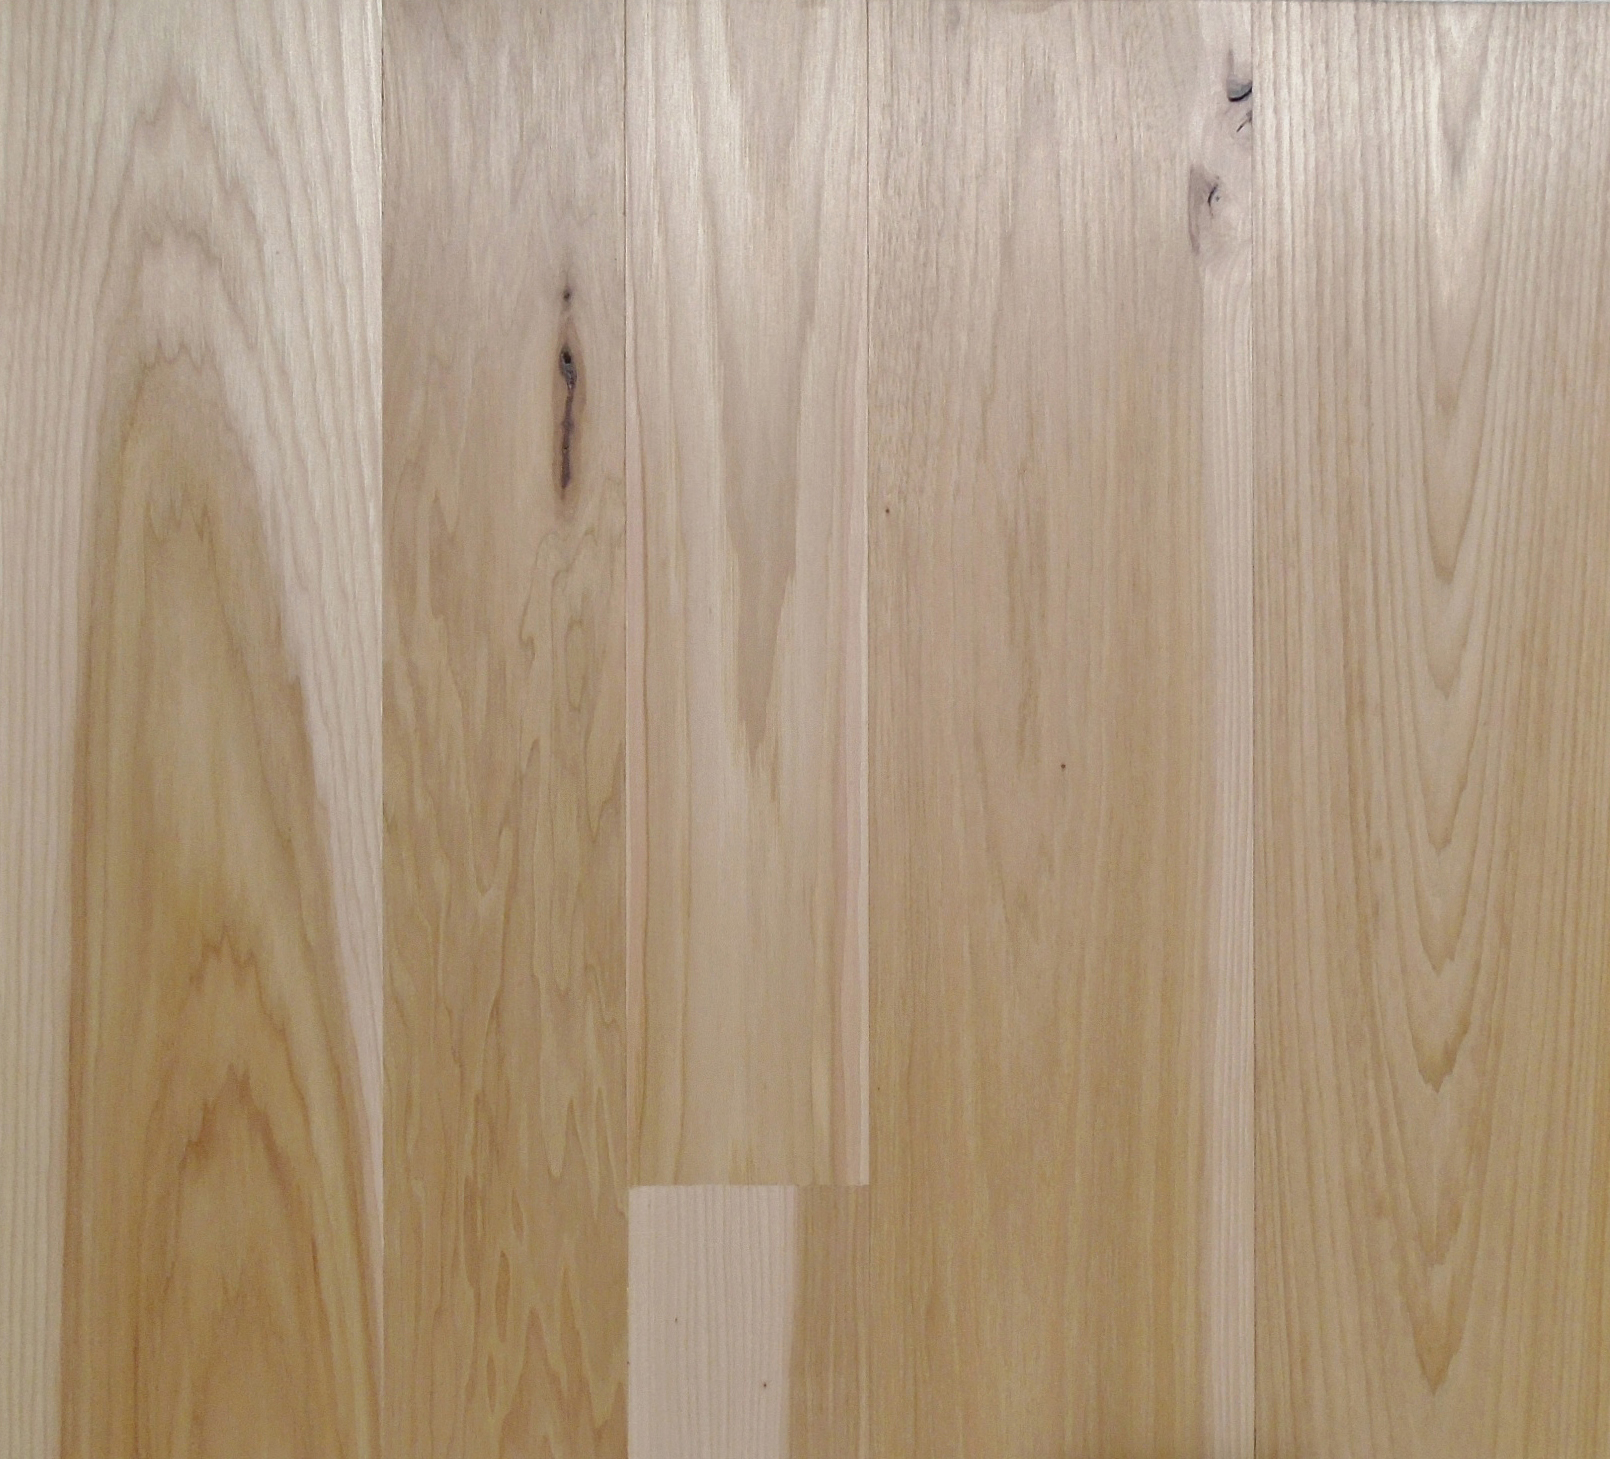 Pioneer Millwork Modern Farmhouse Flooring and Paneling, Clean Hickory